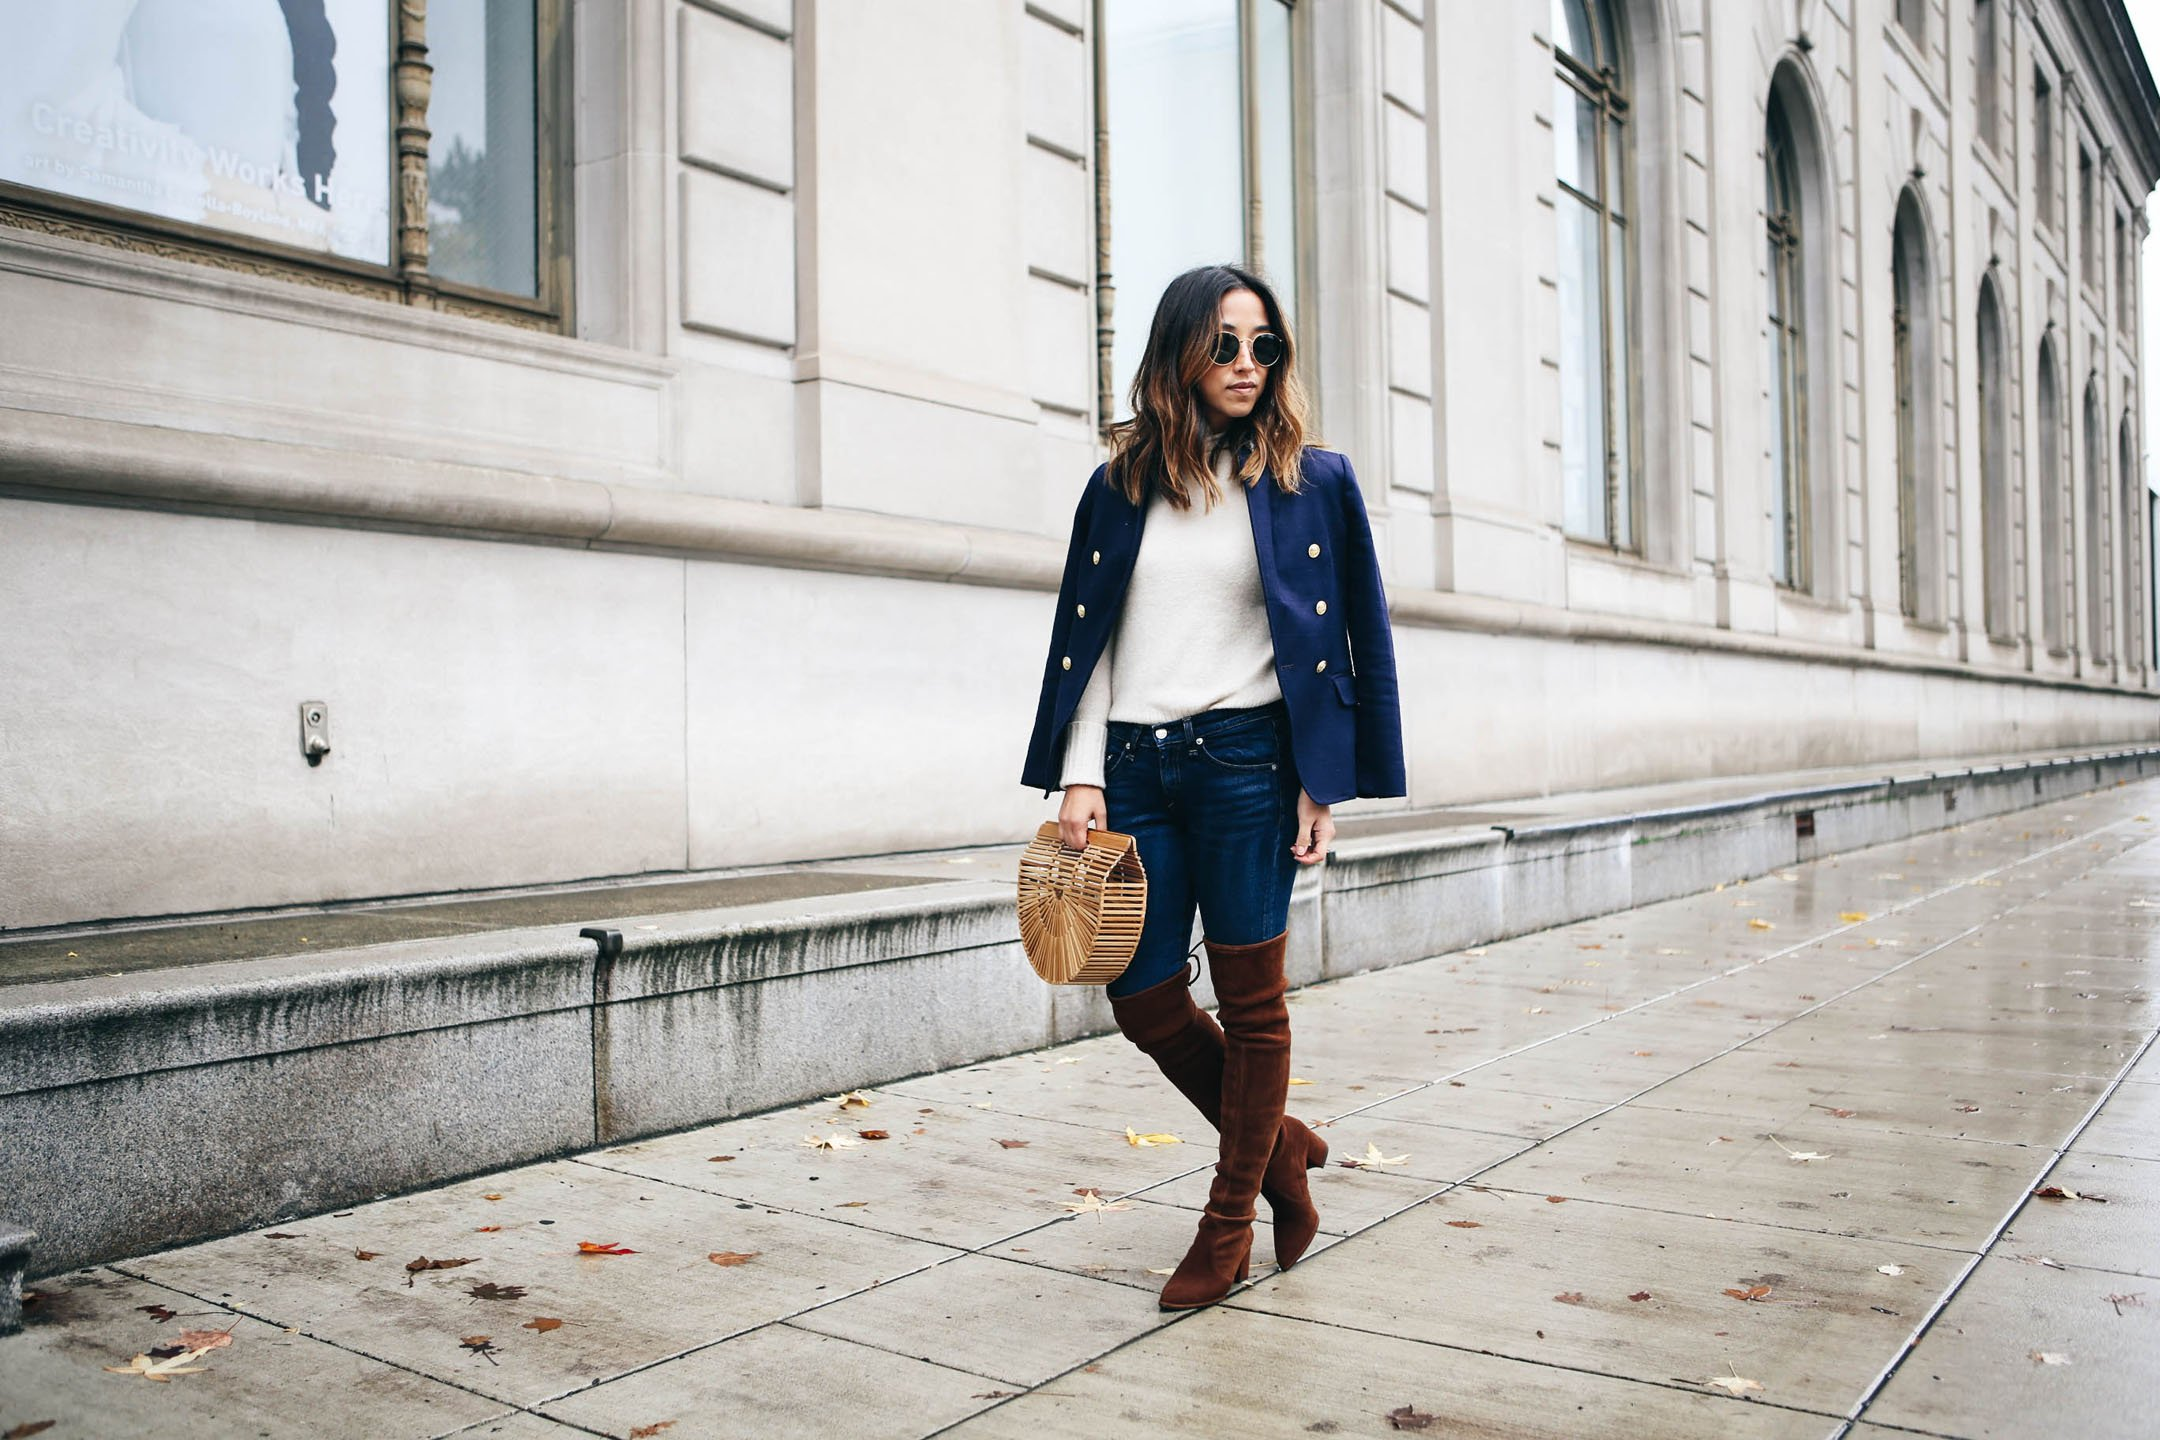 crystalin-marie-wearing-stuart-weitzman-thighland-over-the-knee-boots-in-walnut